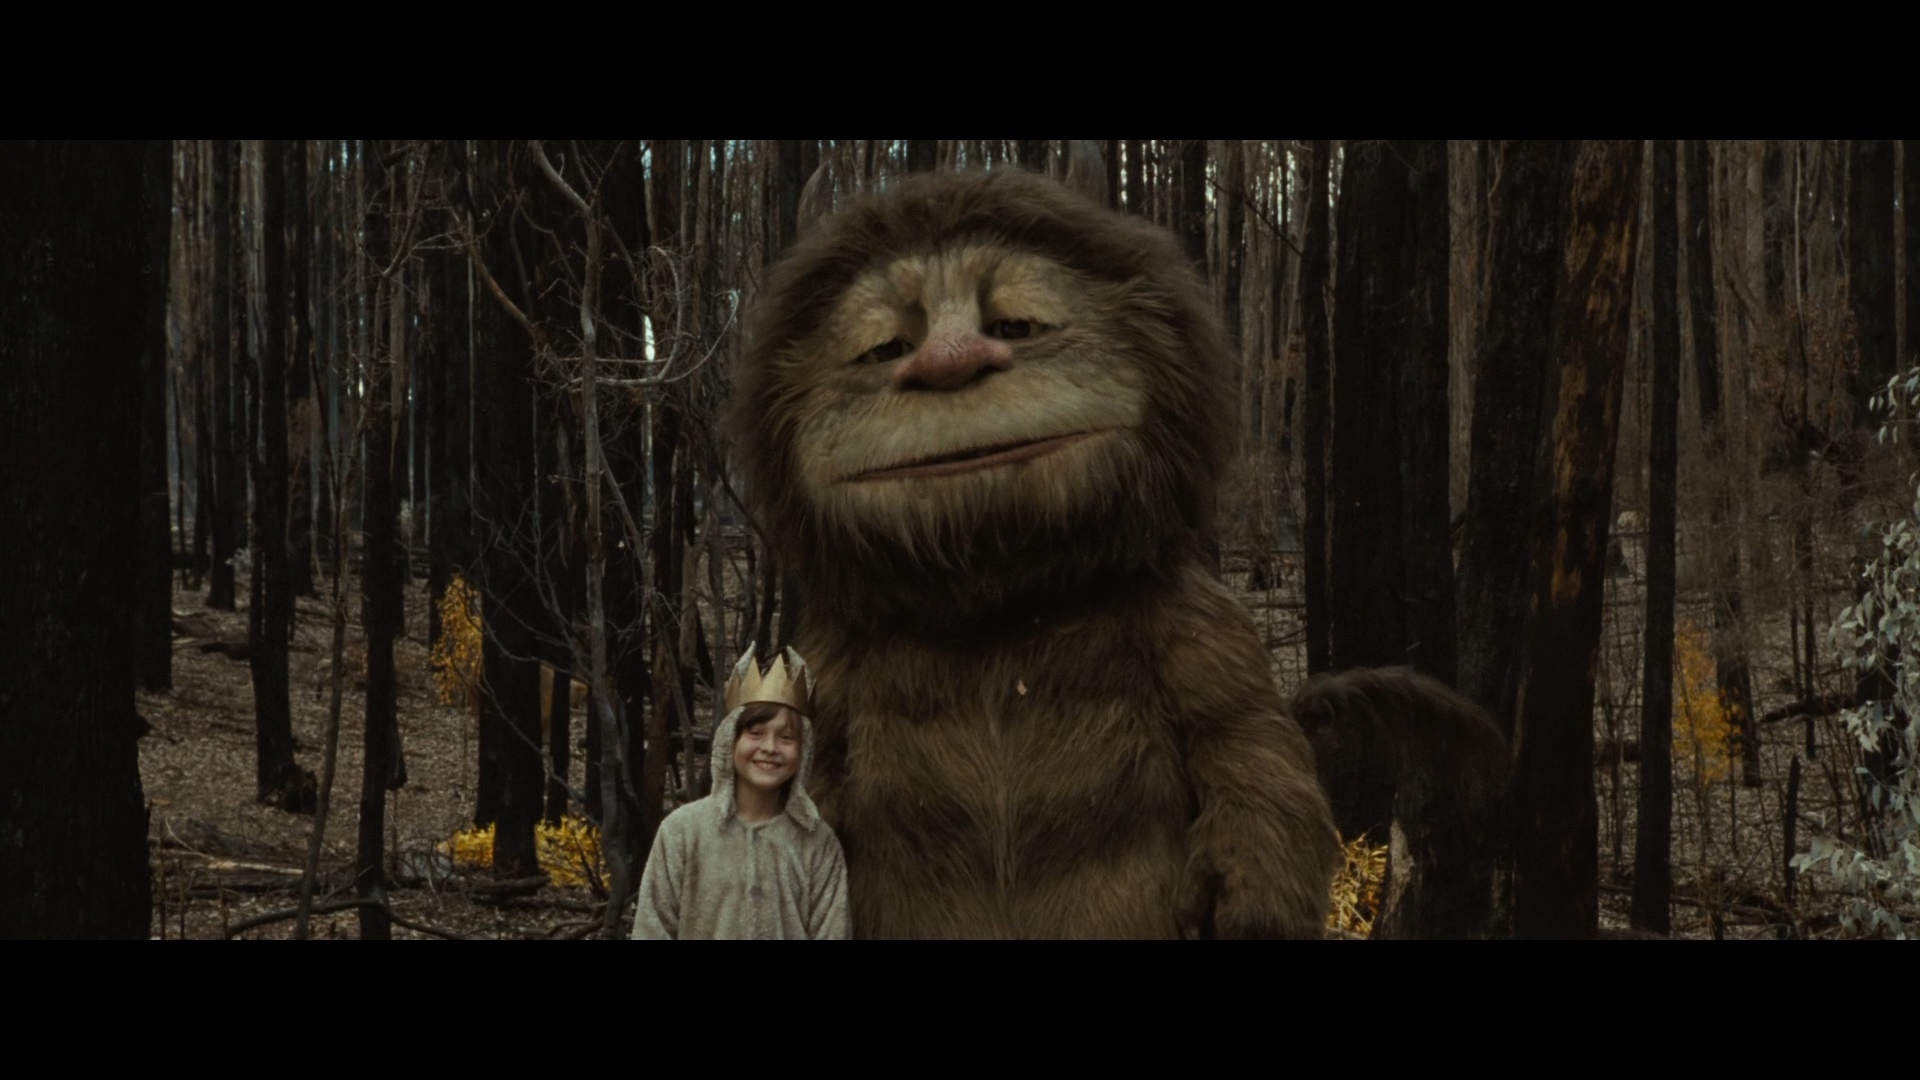 Where the Wild Things Are Review - DoBlu.com